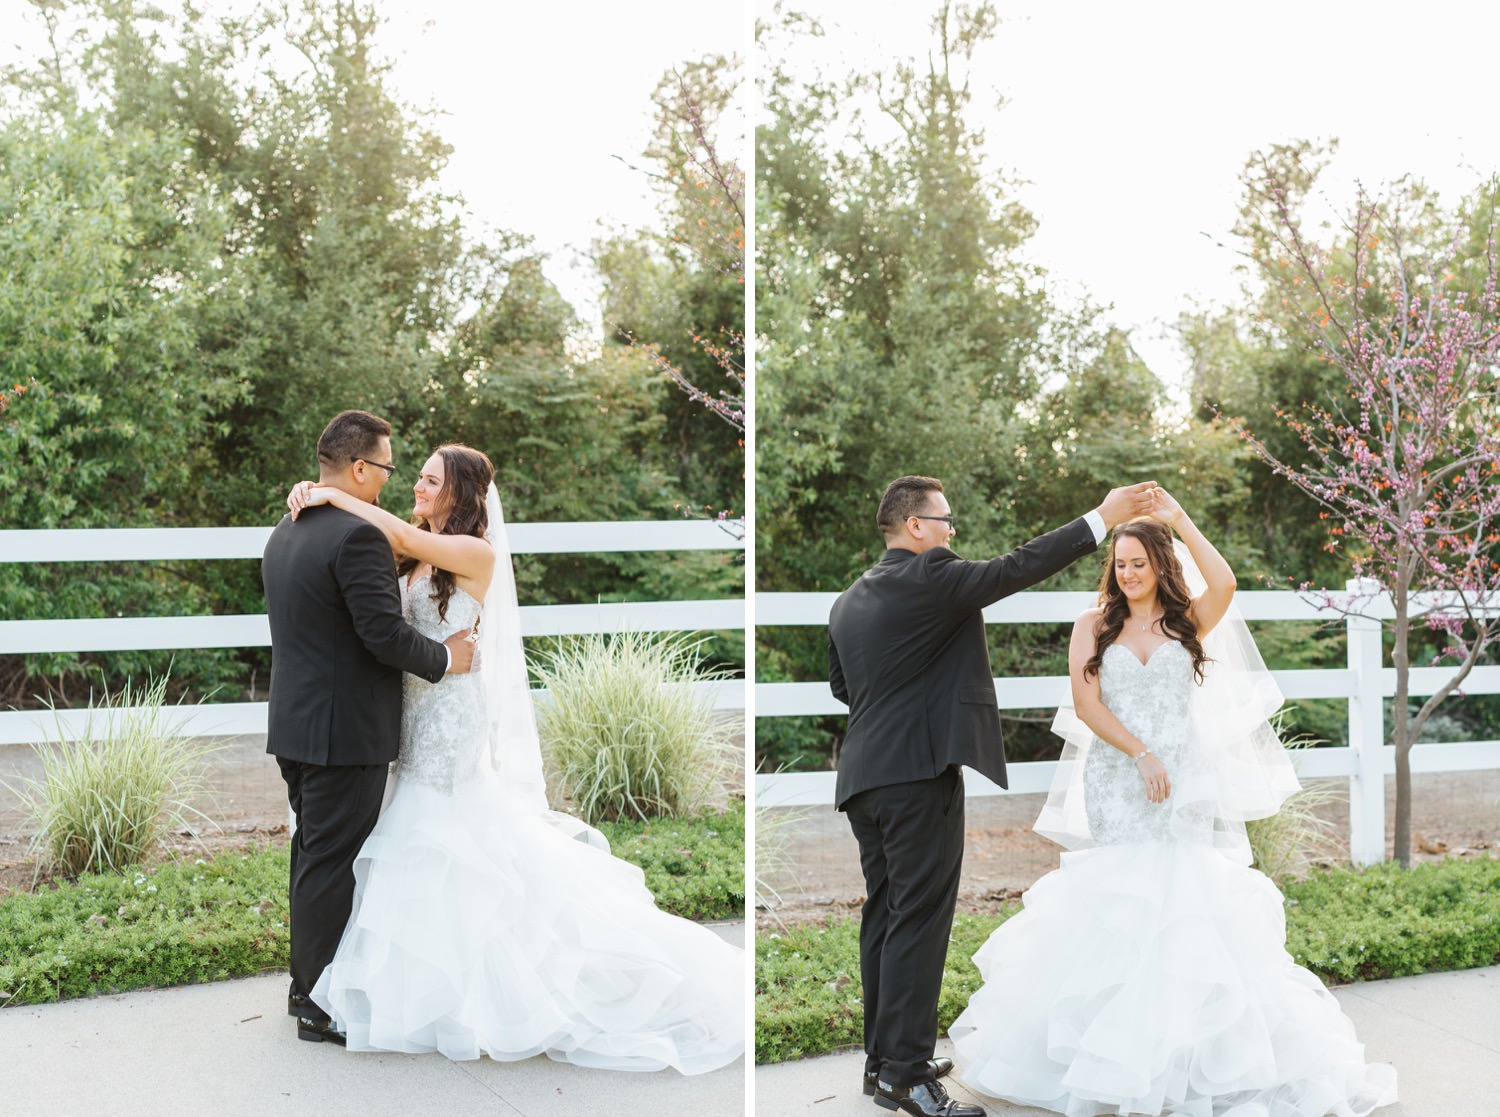 Groom spins his bride while they dance - https://brittneyhannonphotography.com